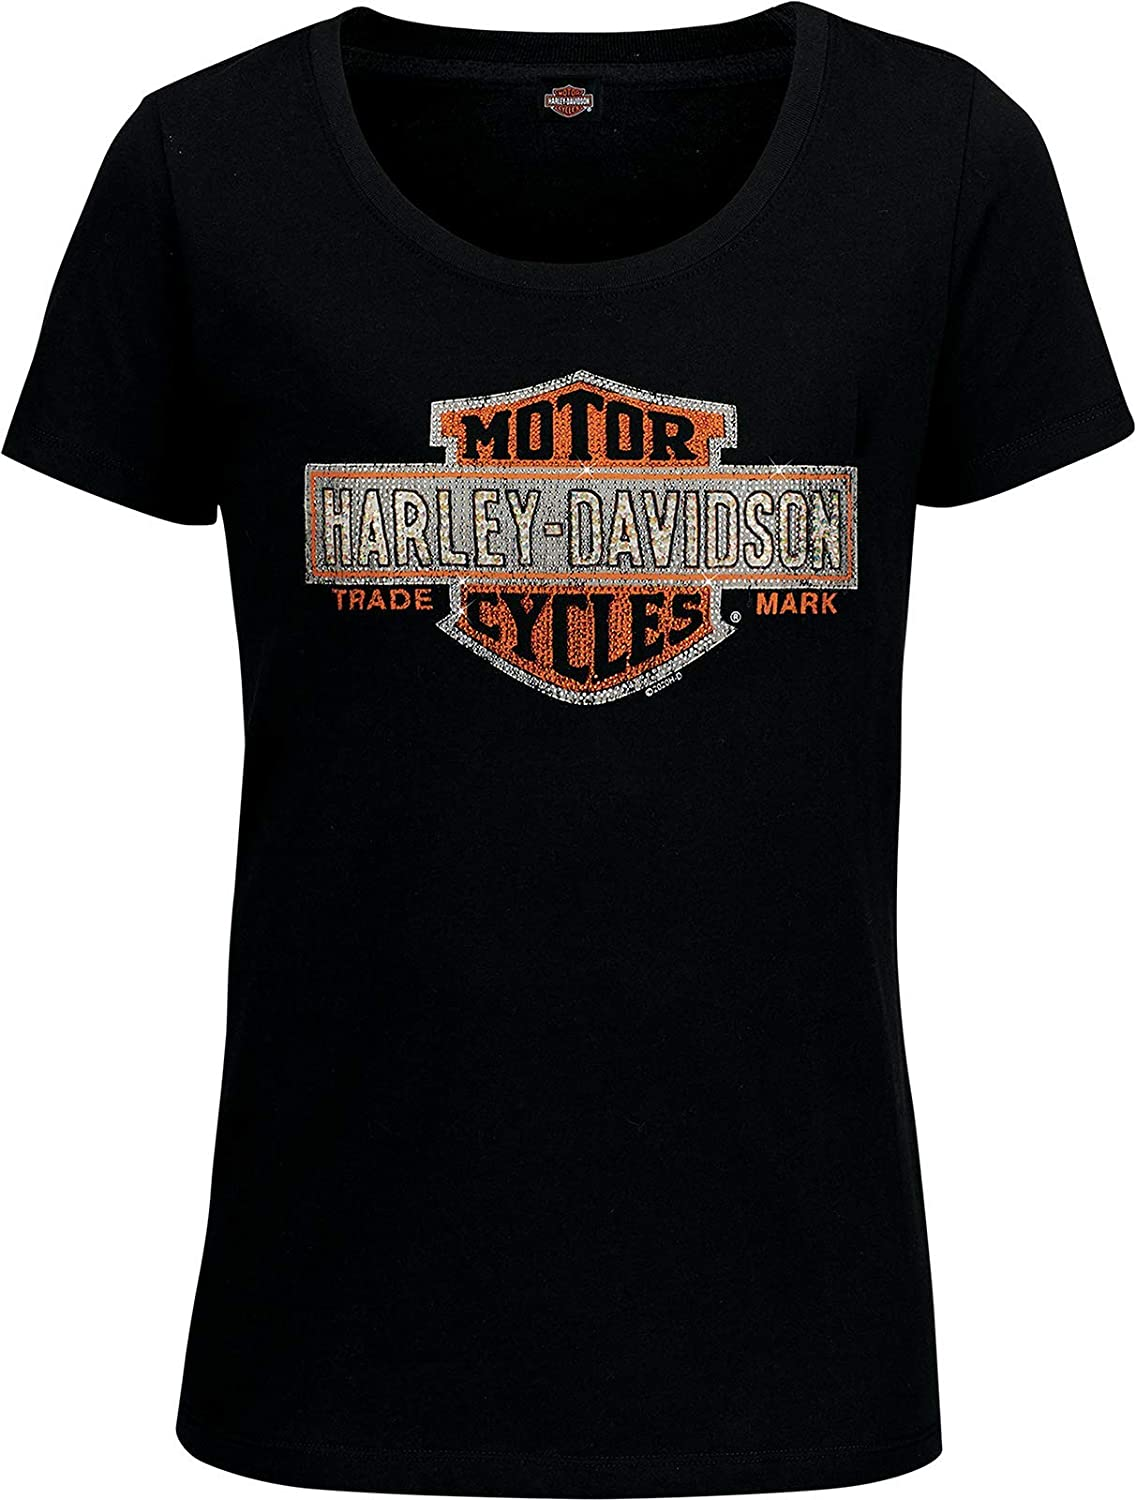 Harley-Davidson Military - Women's Save Baltimore Mall money Black and Bar Neck Shie Scoop